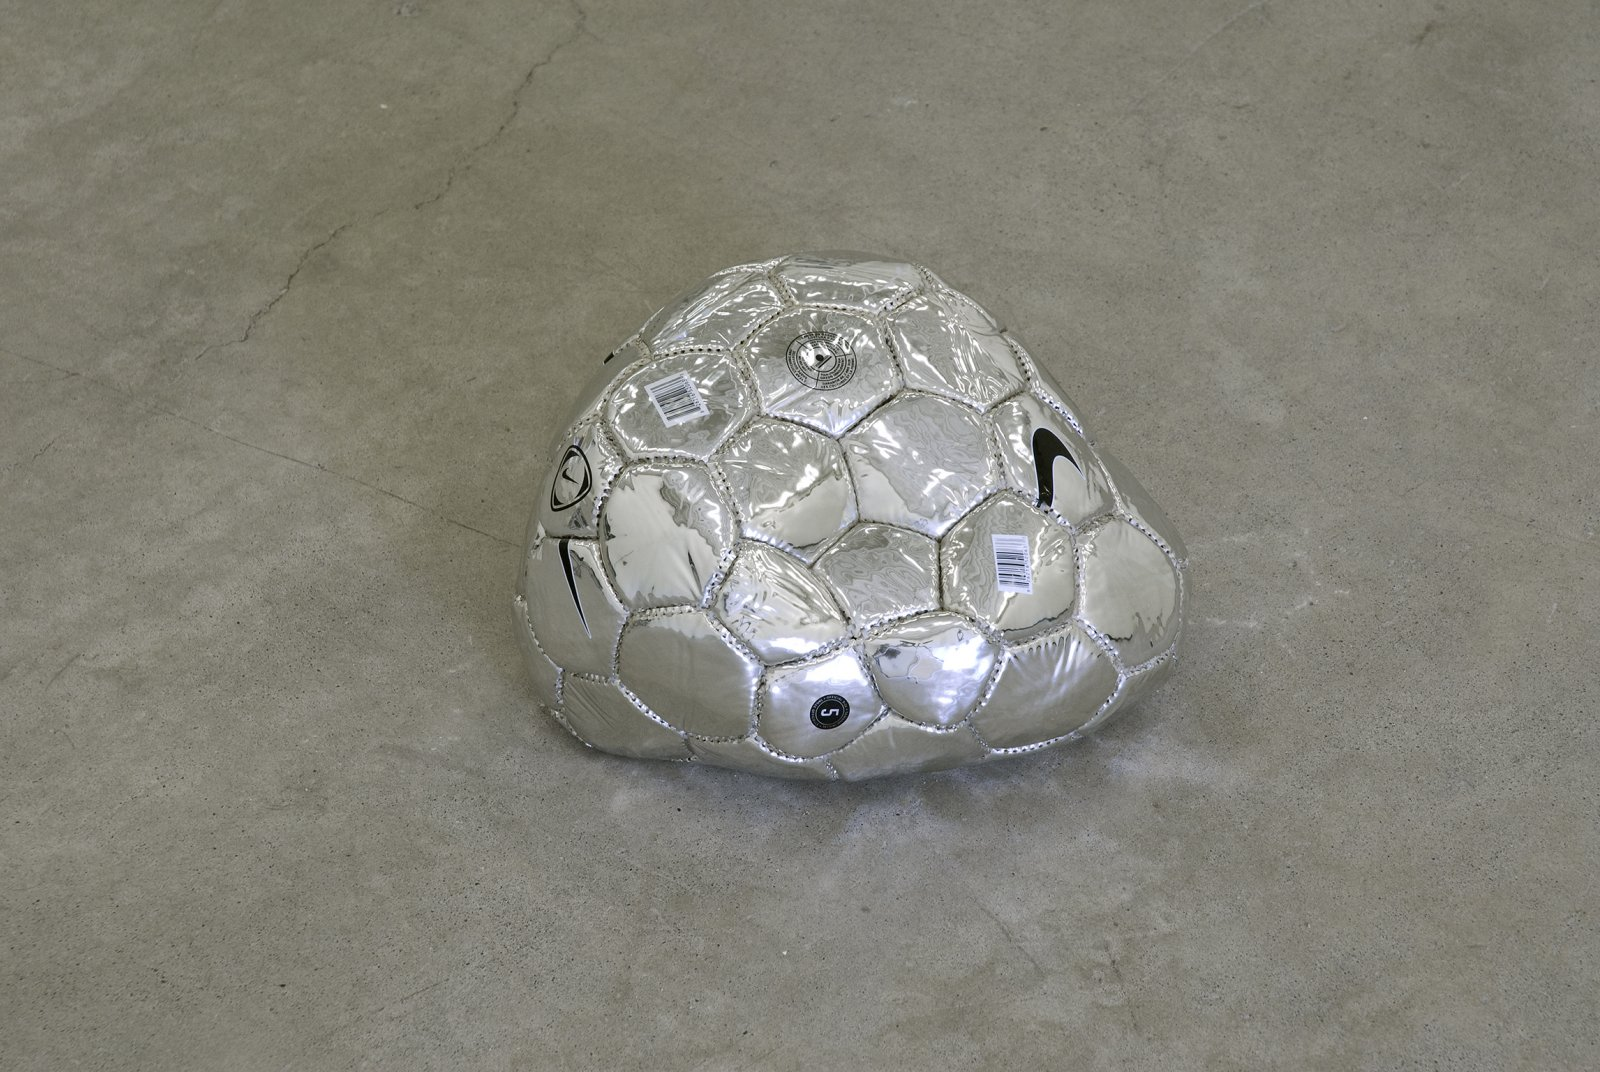 Brian Jungen,Modern Sculpture (After Iceland)(detail), 2005, 6 sculptural forms of lava rock and soccer balls, dimensions variable